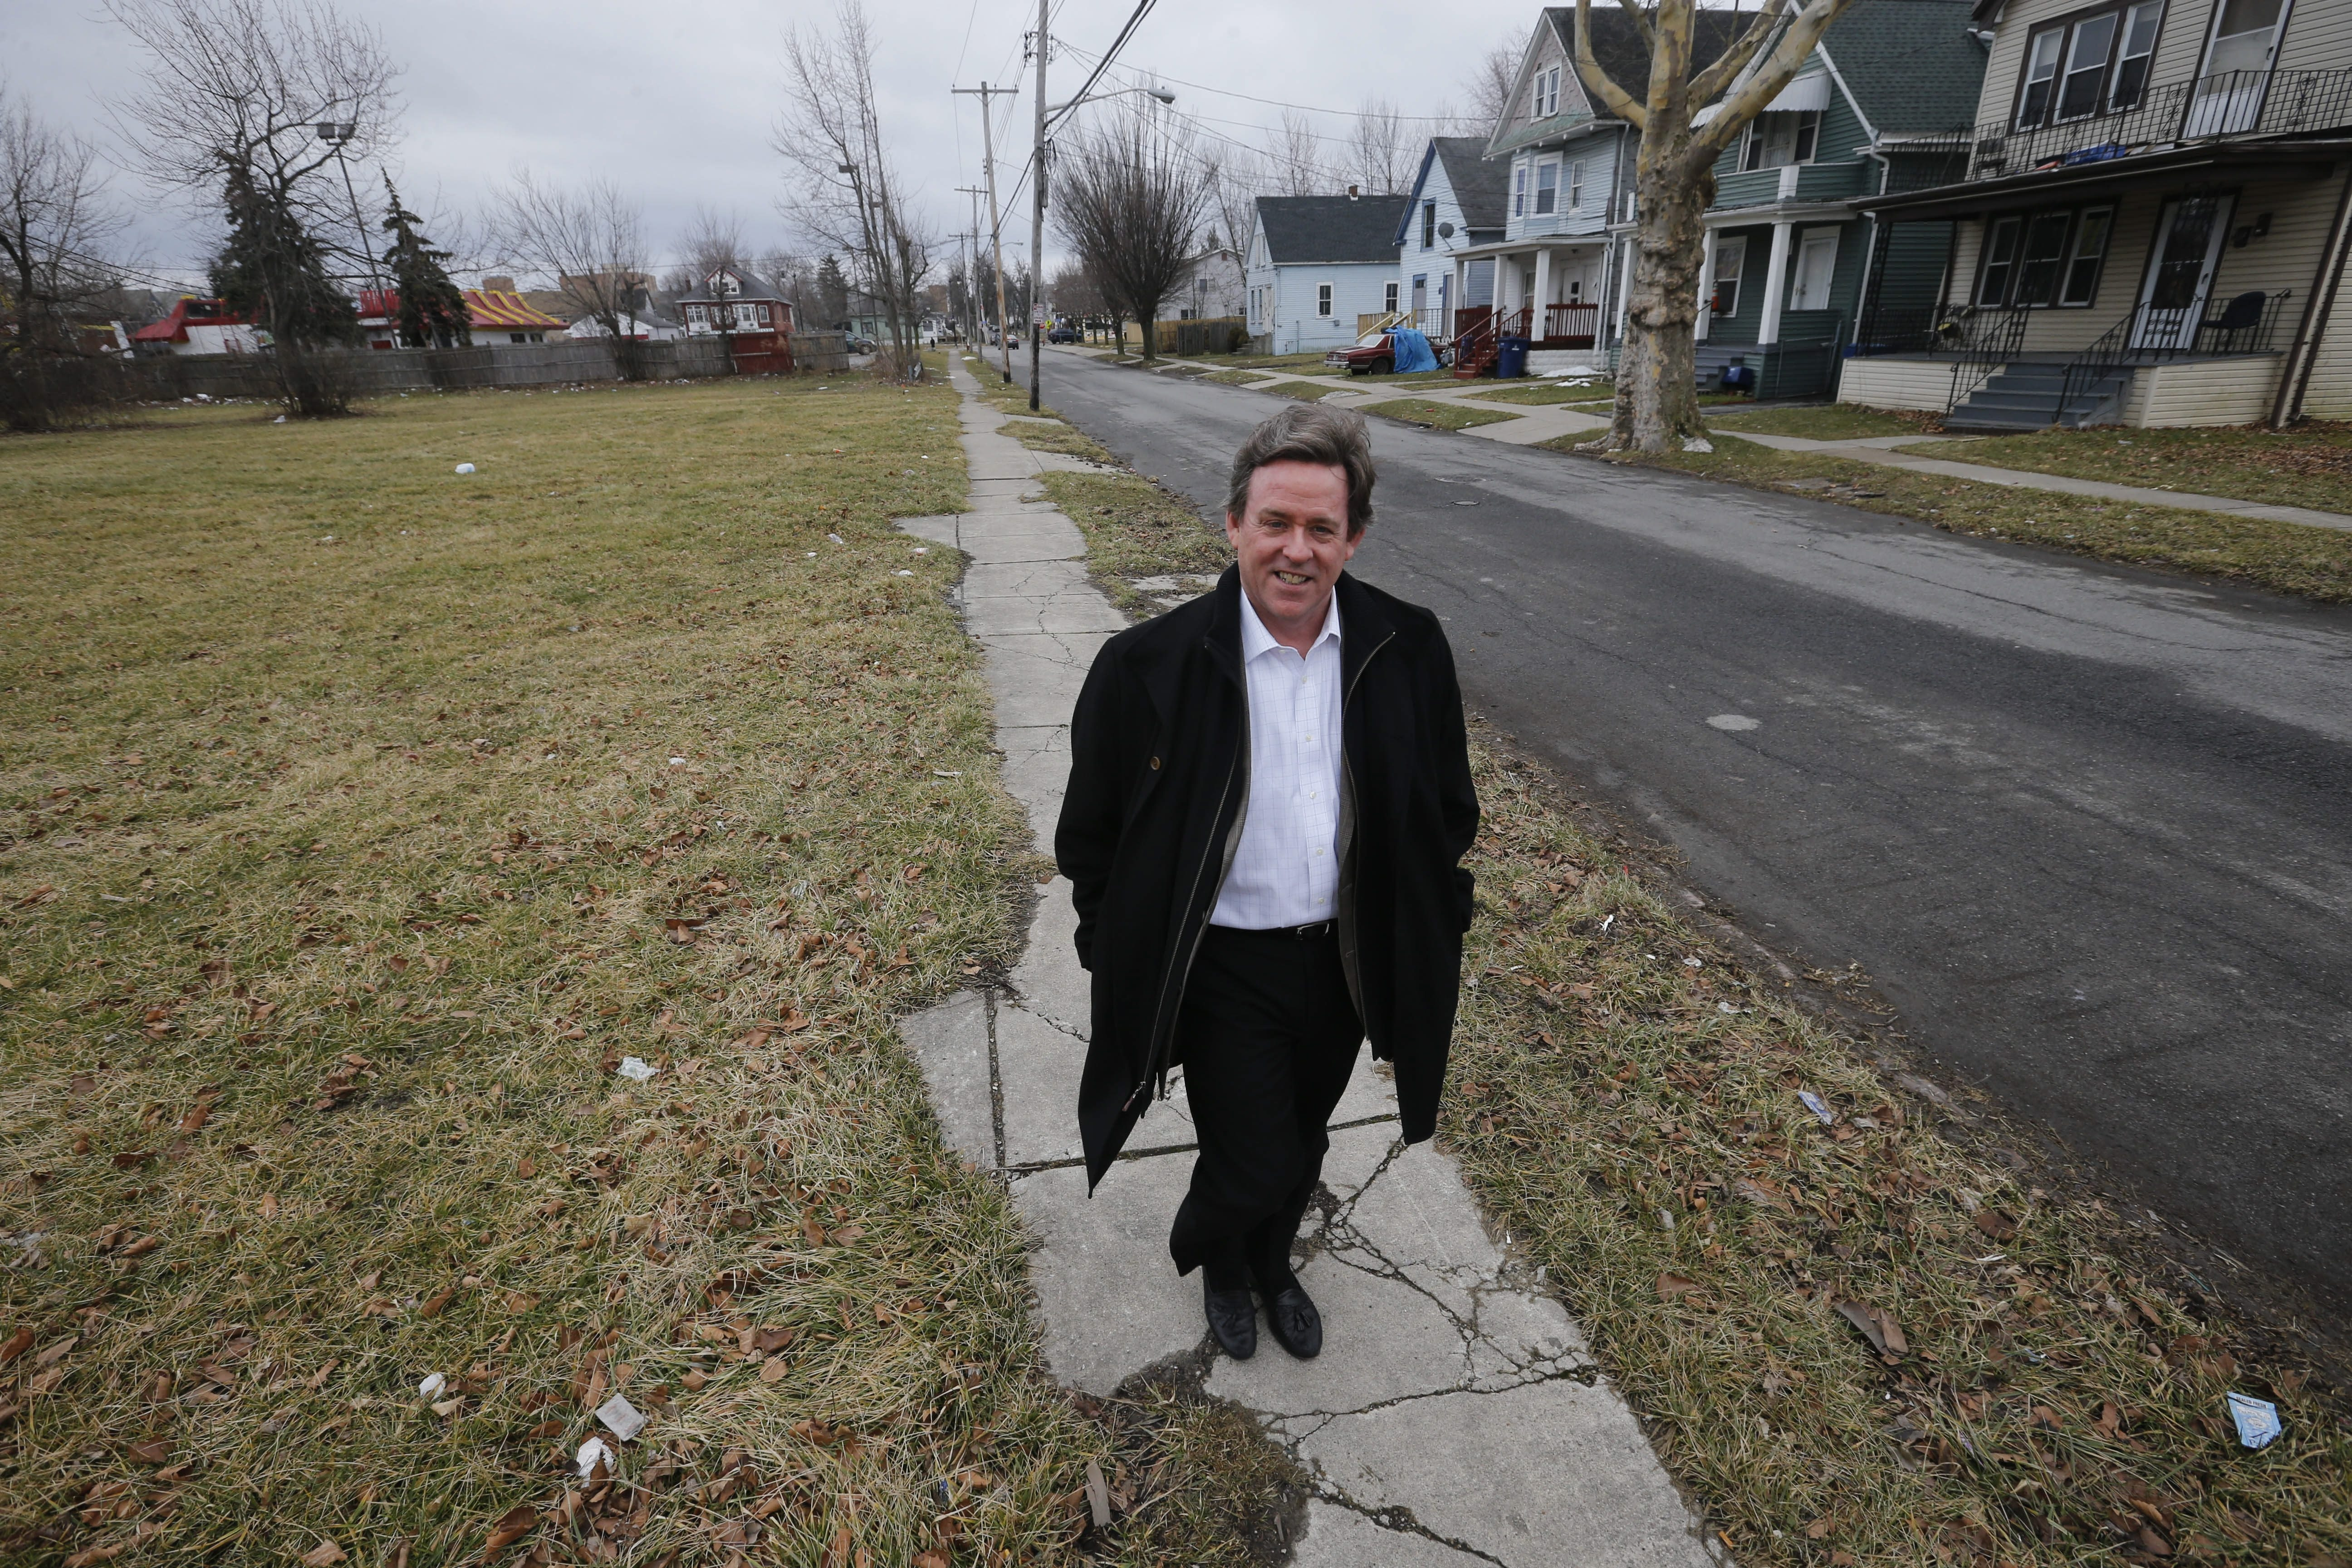 John Somers, owner of Harmac Medical Products, walks down Wende Street, where his company is planning to develop empty lots in an effort to help fix up the neighborhood around the company's Bailey Avenue plant. (Derek Gee/Buffalo News)